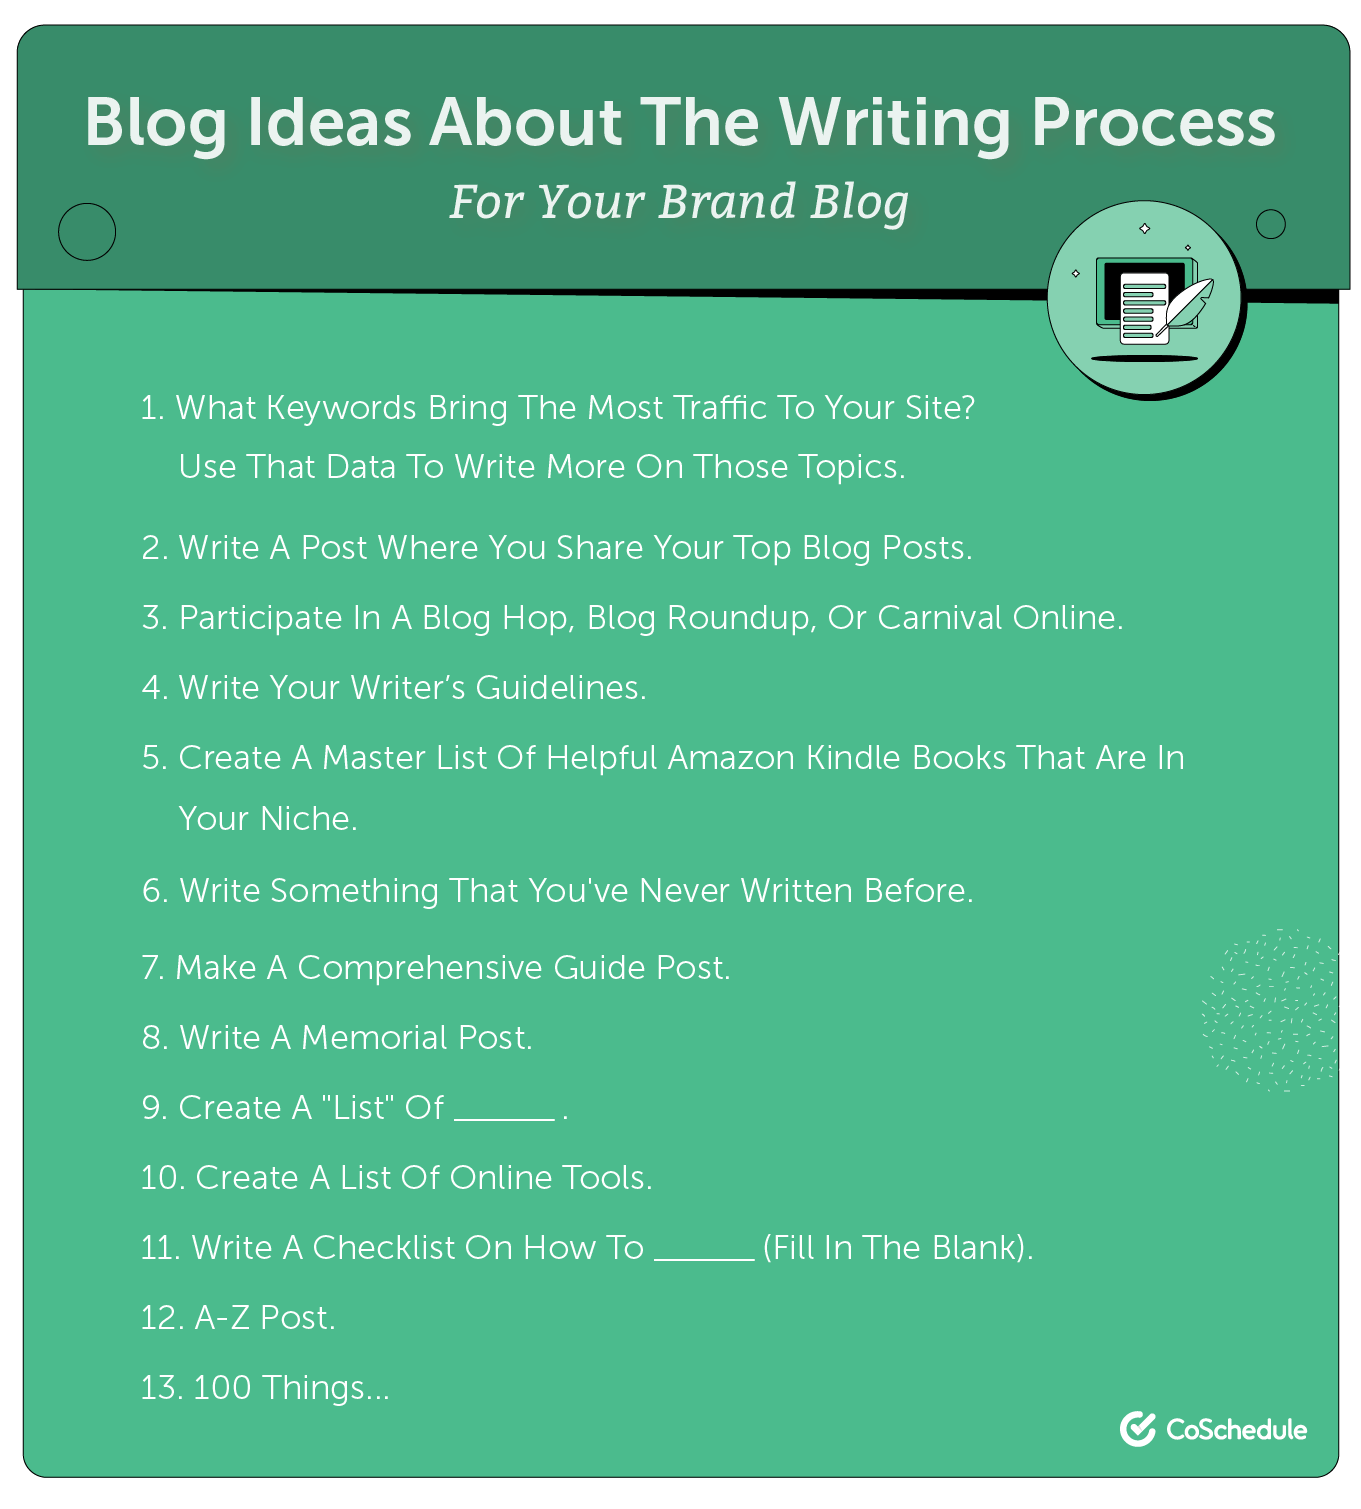 Blog ideas about the writing process.